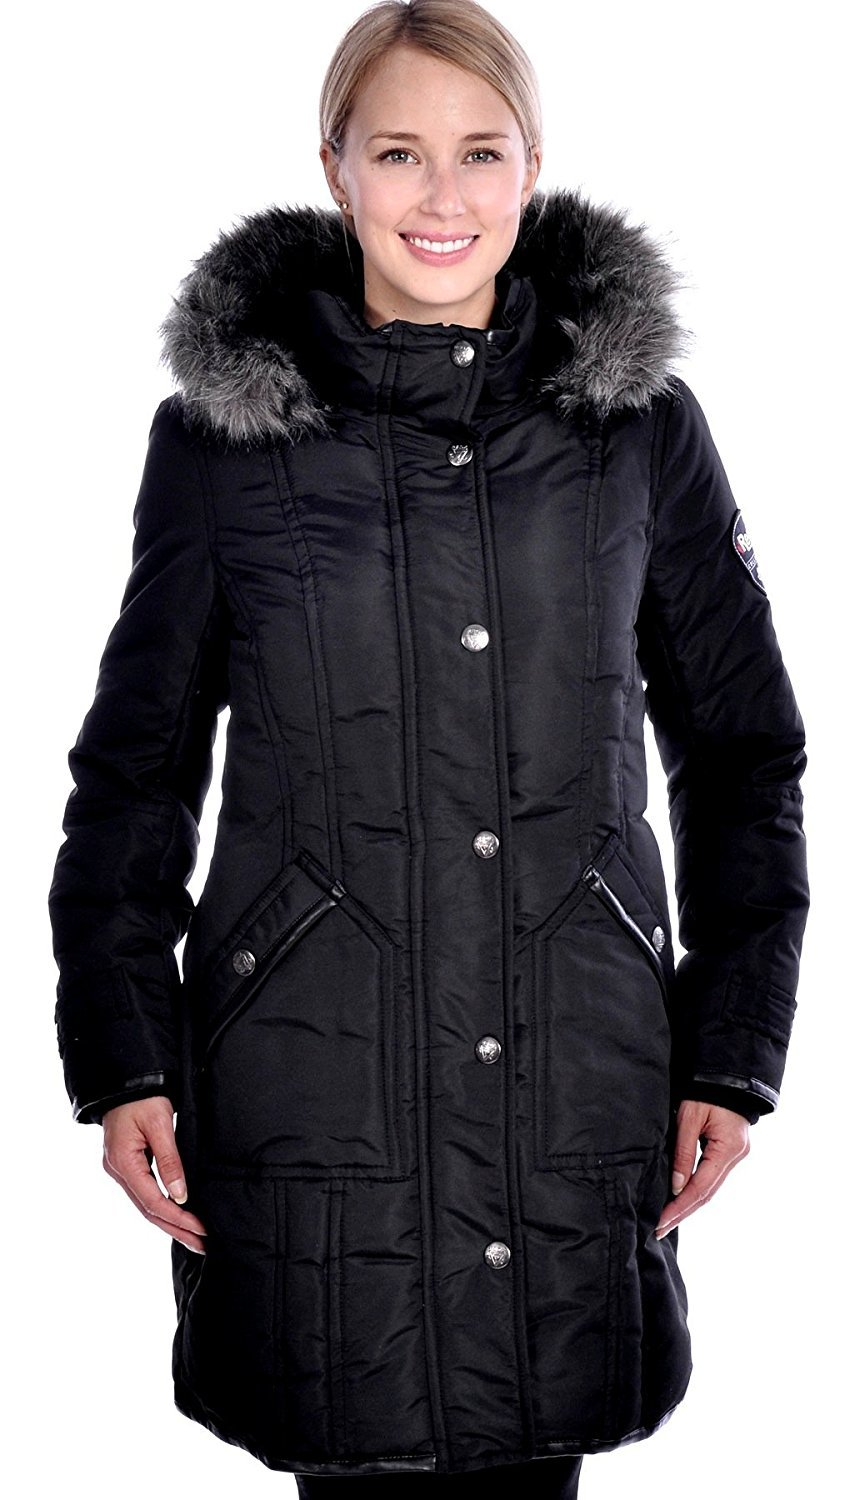 RedX Canada Women's Parka Winter Coat With Faux Fur Lined Hood (1X, Black)